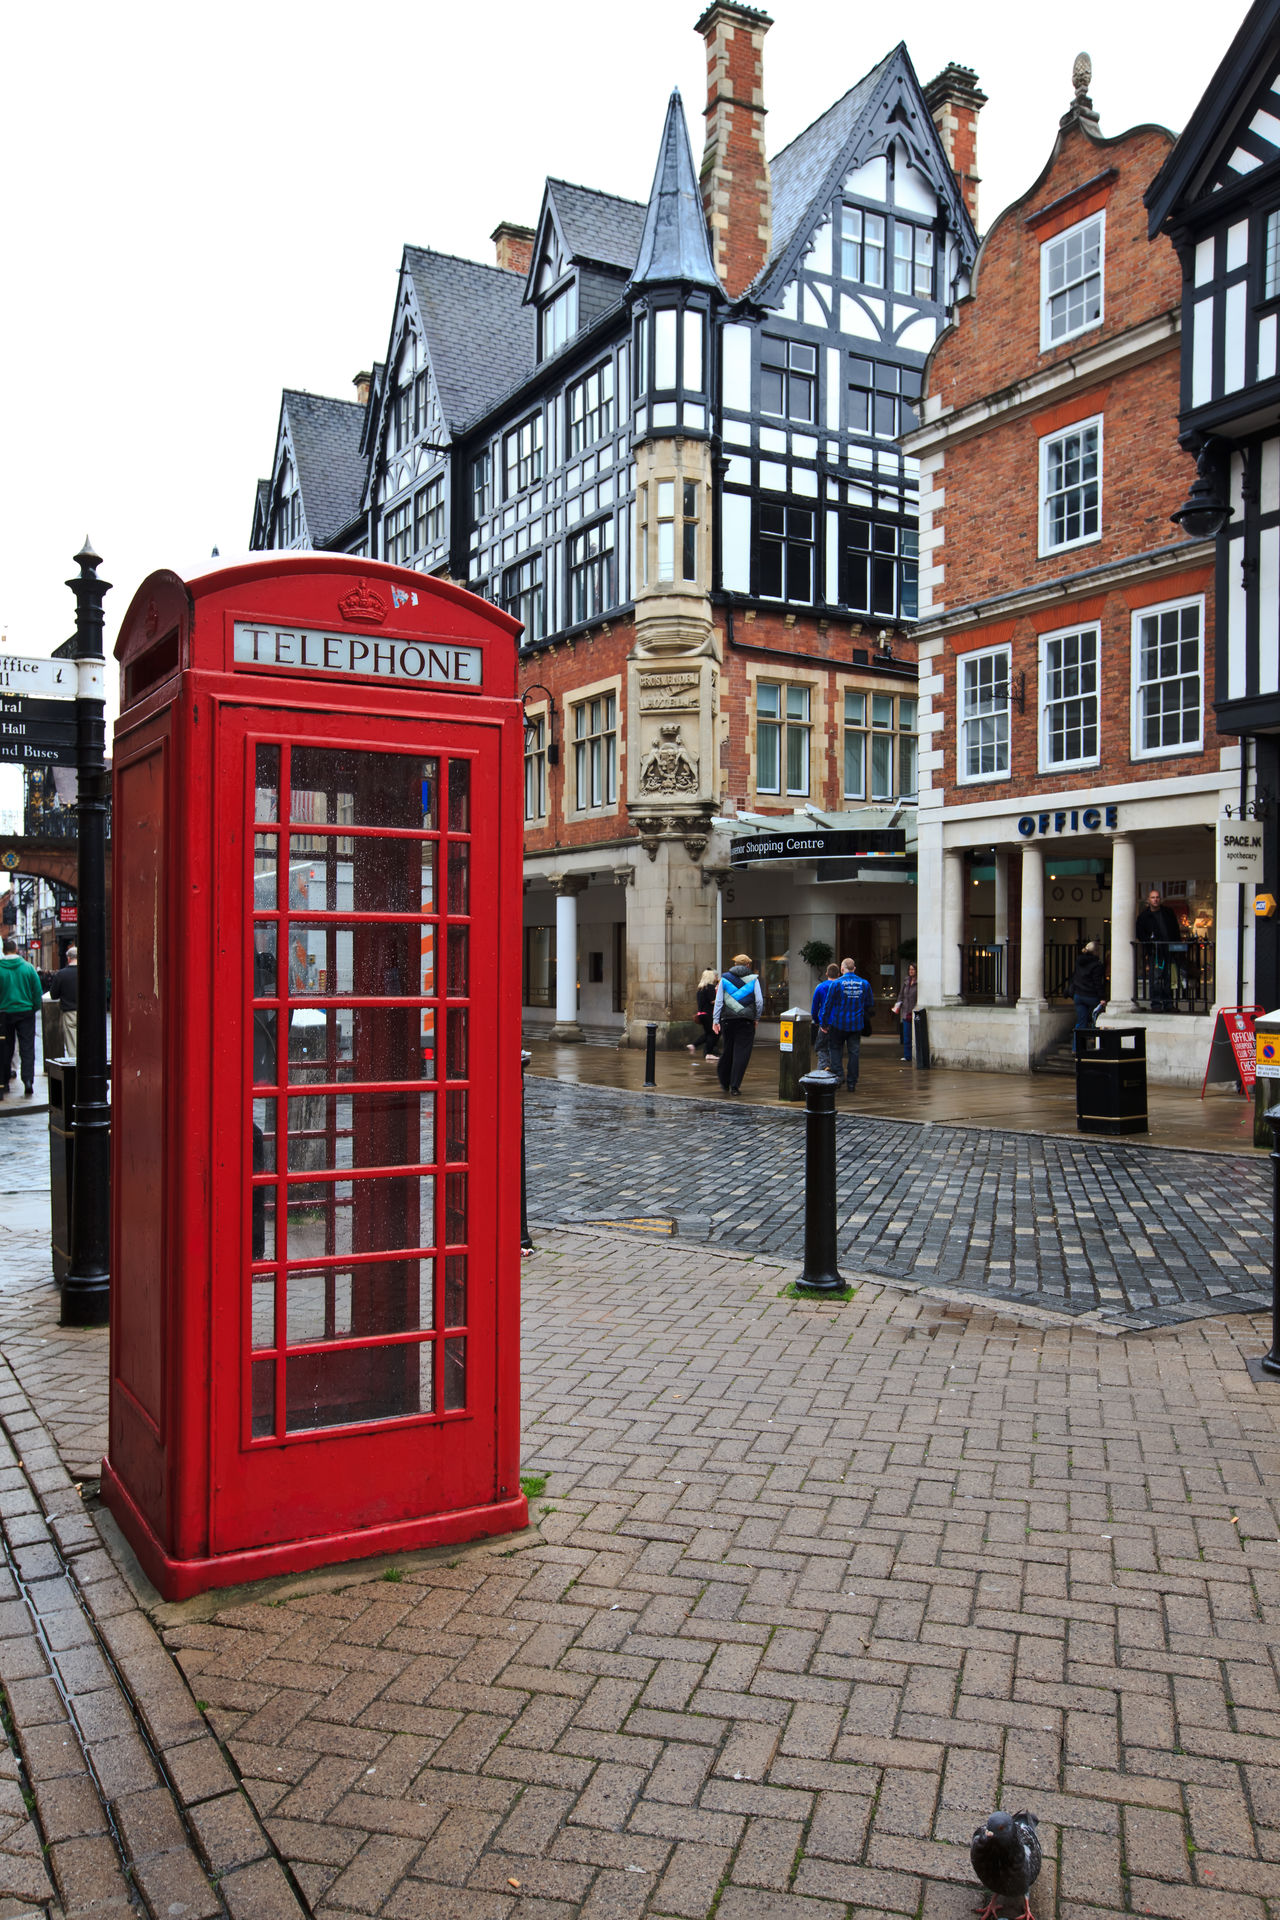 Old fashioned red telephone box in historical part of Chester, UK Adult Adults Only Architecture British Building Exterior Cheshire Chester City City Life Connection Day Eye4photography  EyeEm Gallery Historic Outdoors Pay Phone People Red Red Box Red Phone Boxes Telecommunications Equipment Telephone Telephone Booth Travel Destinations Uk